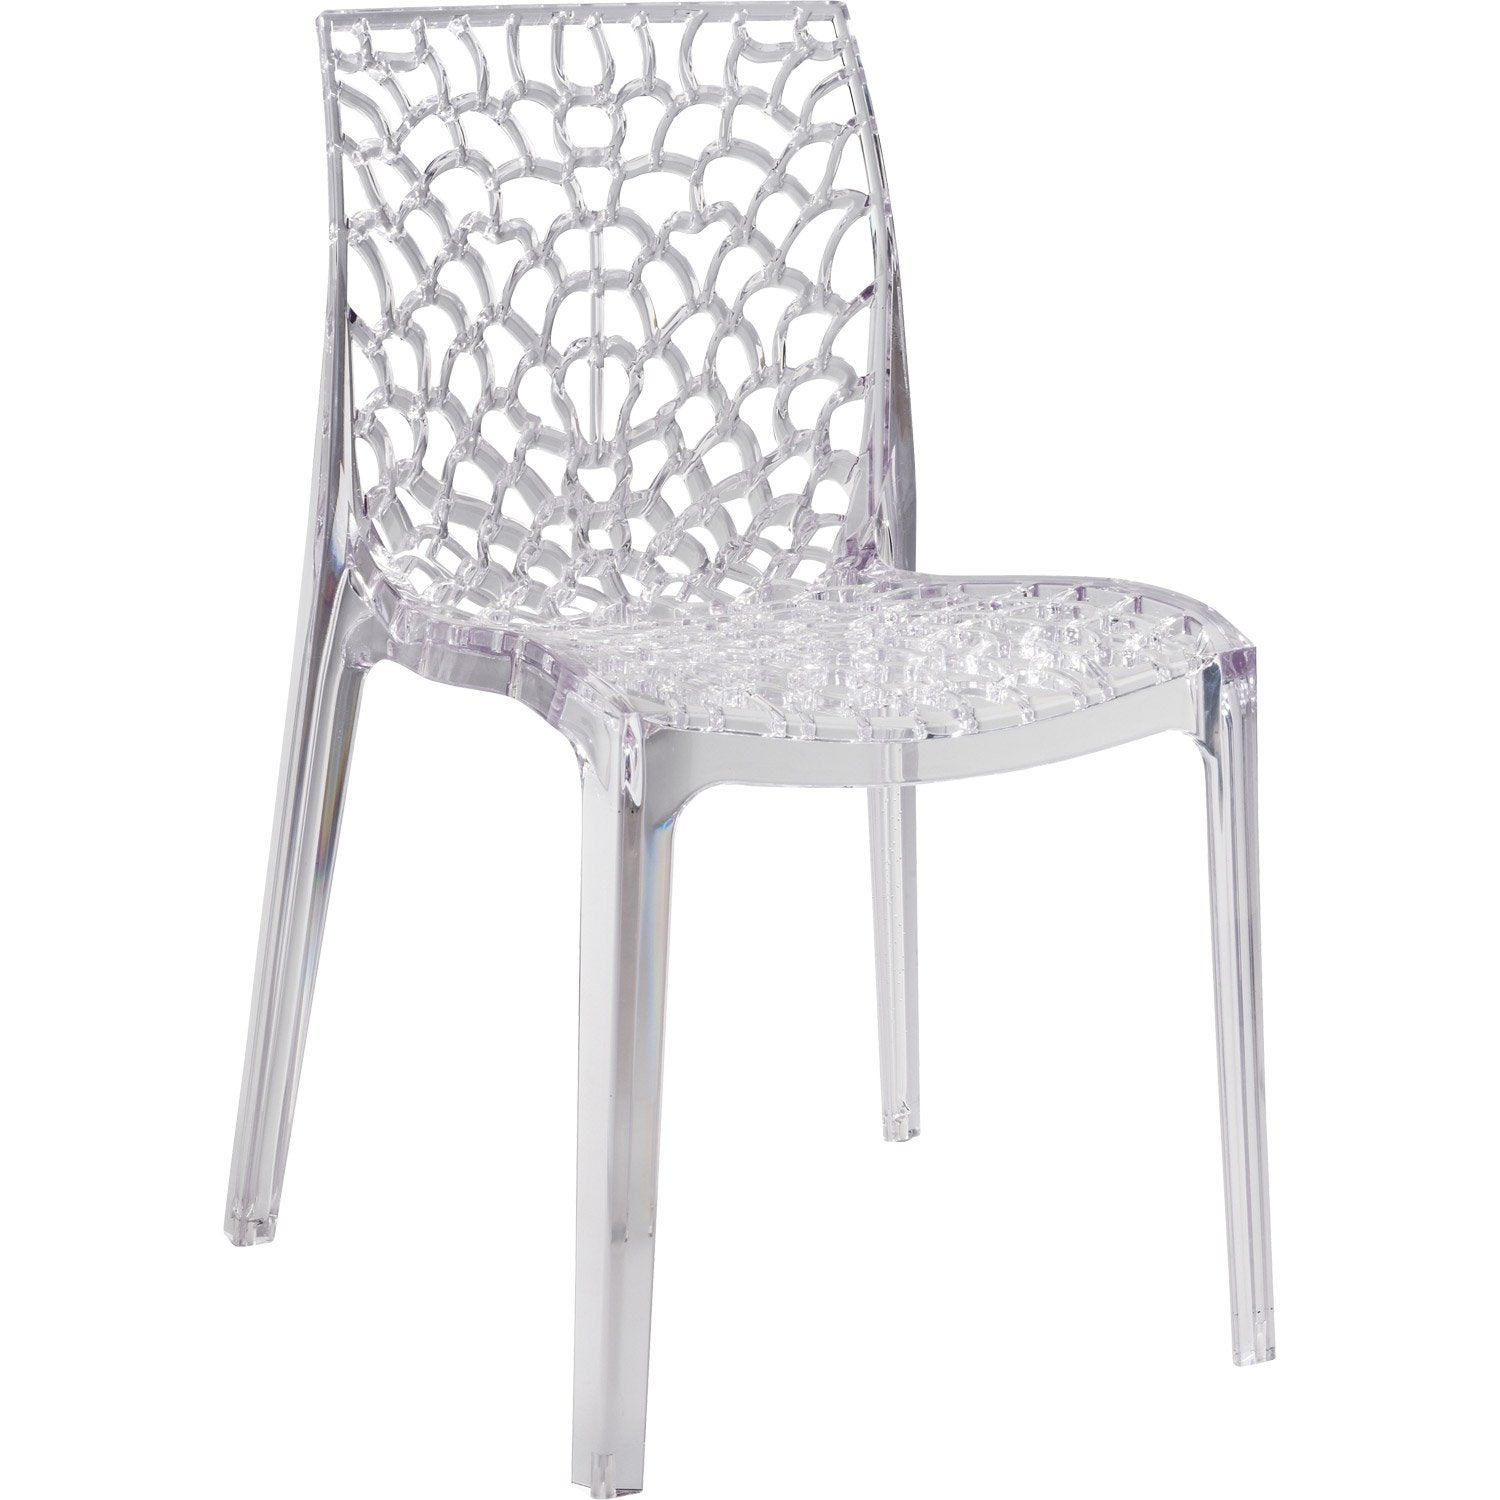 Chaise de jardin en polycarbonate grafik lux transparent for Salon de jardin blanc carrefour